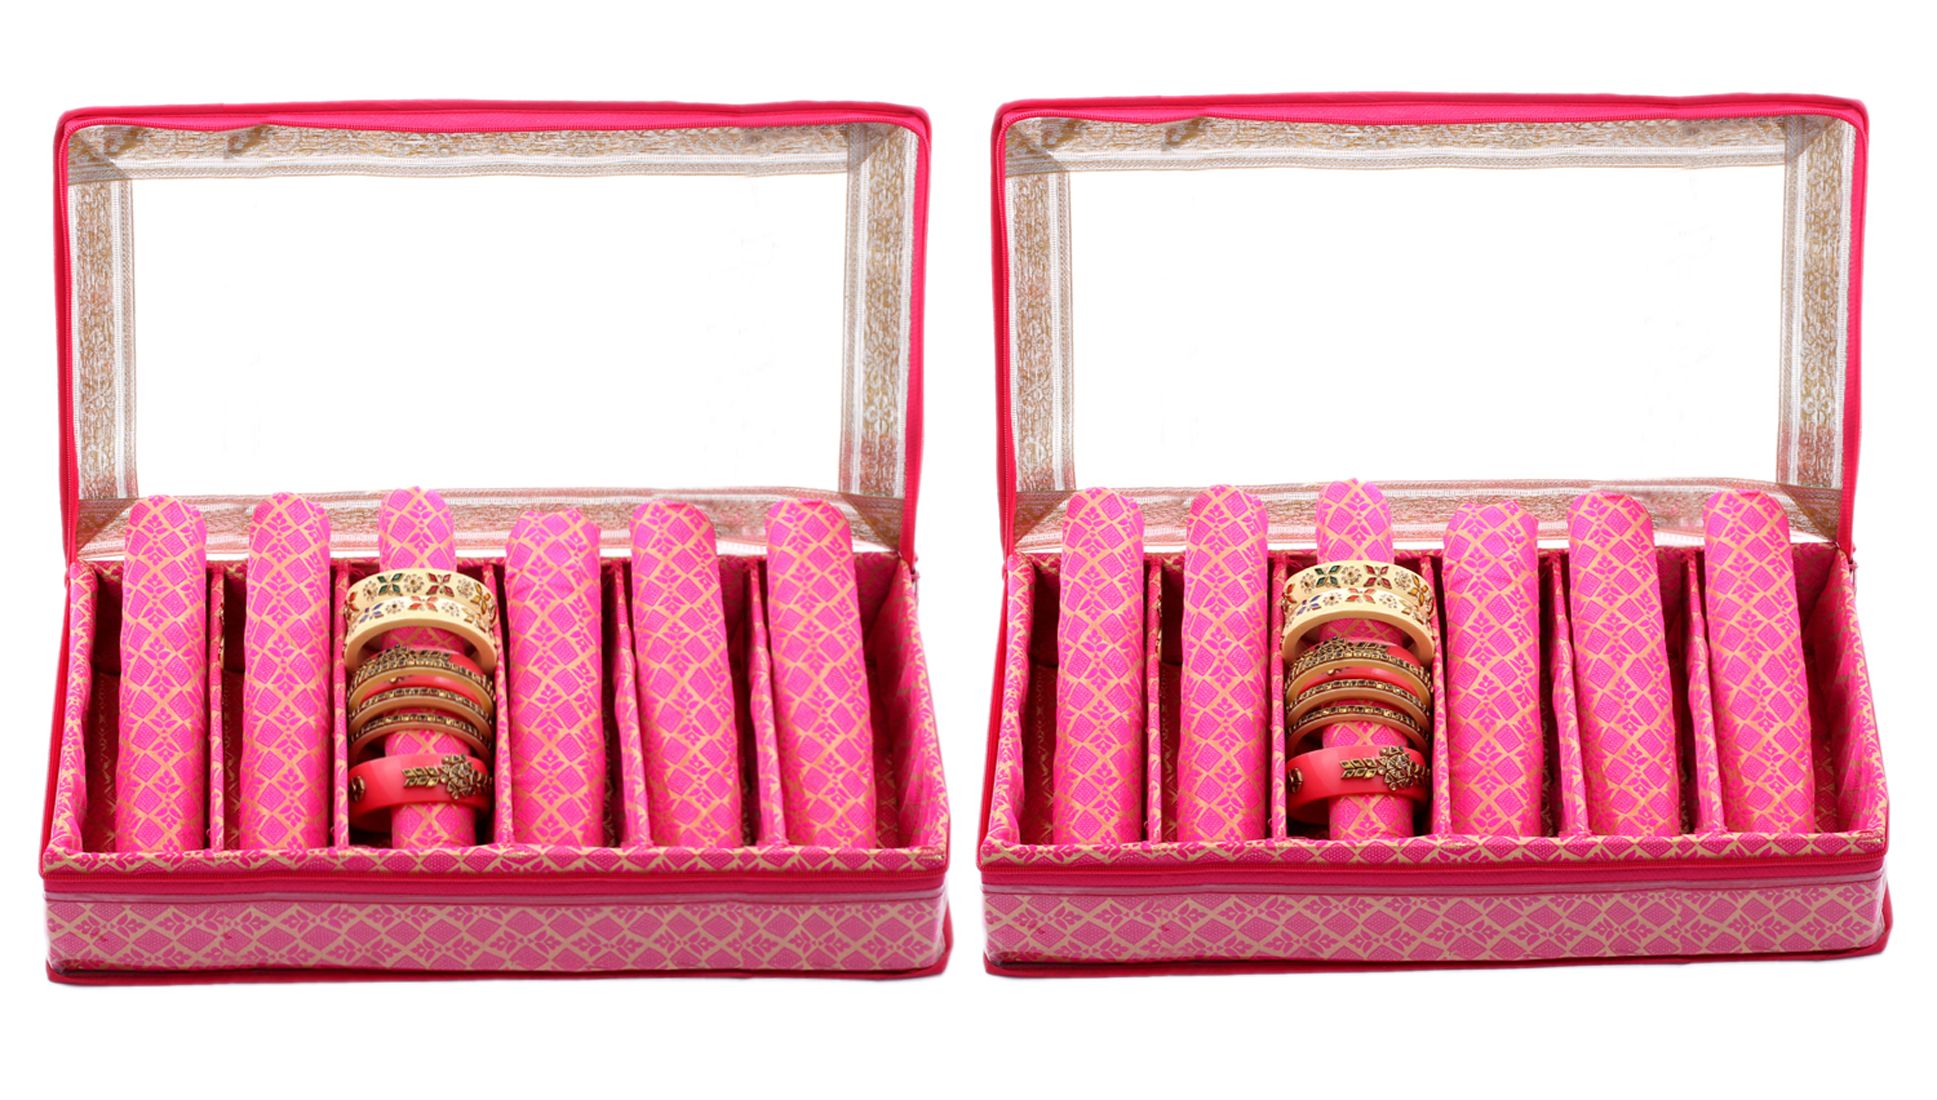 Kuber Industries Brocade Hardboard 2 Pieces Six Rod Bangle Box (Pink) - CTKTC22930